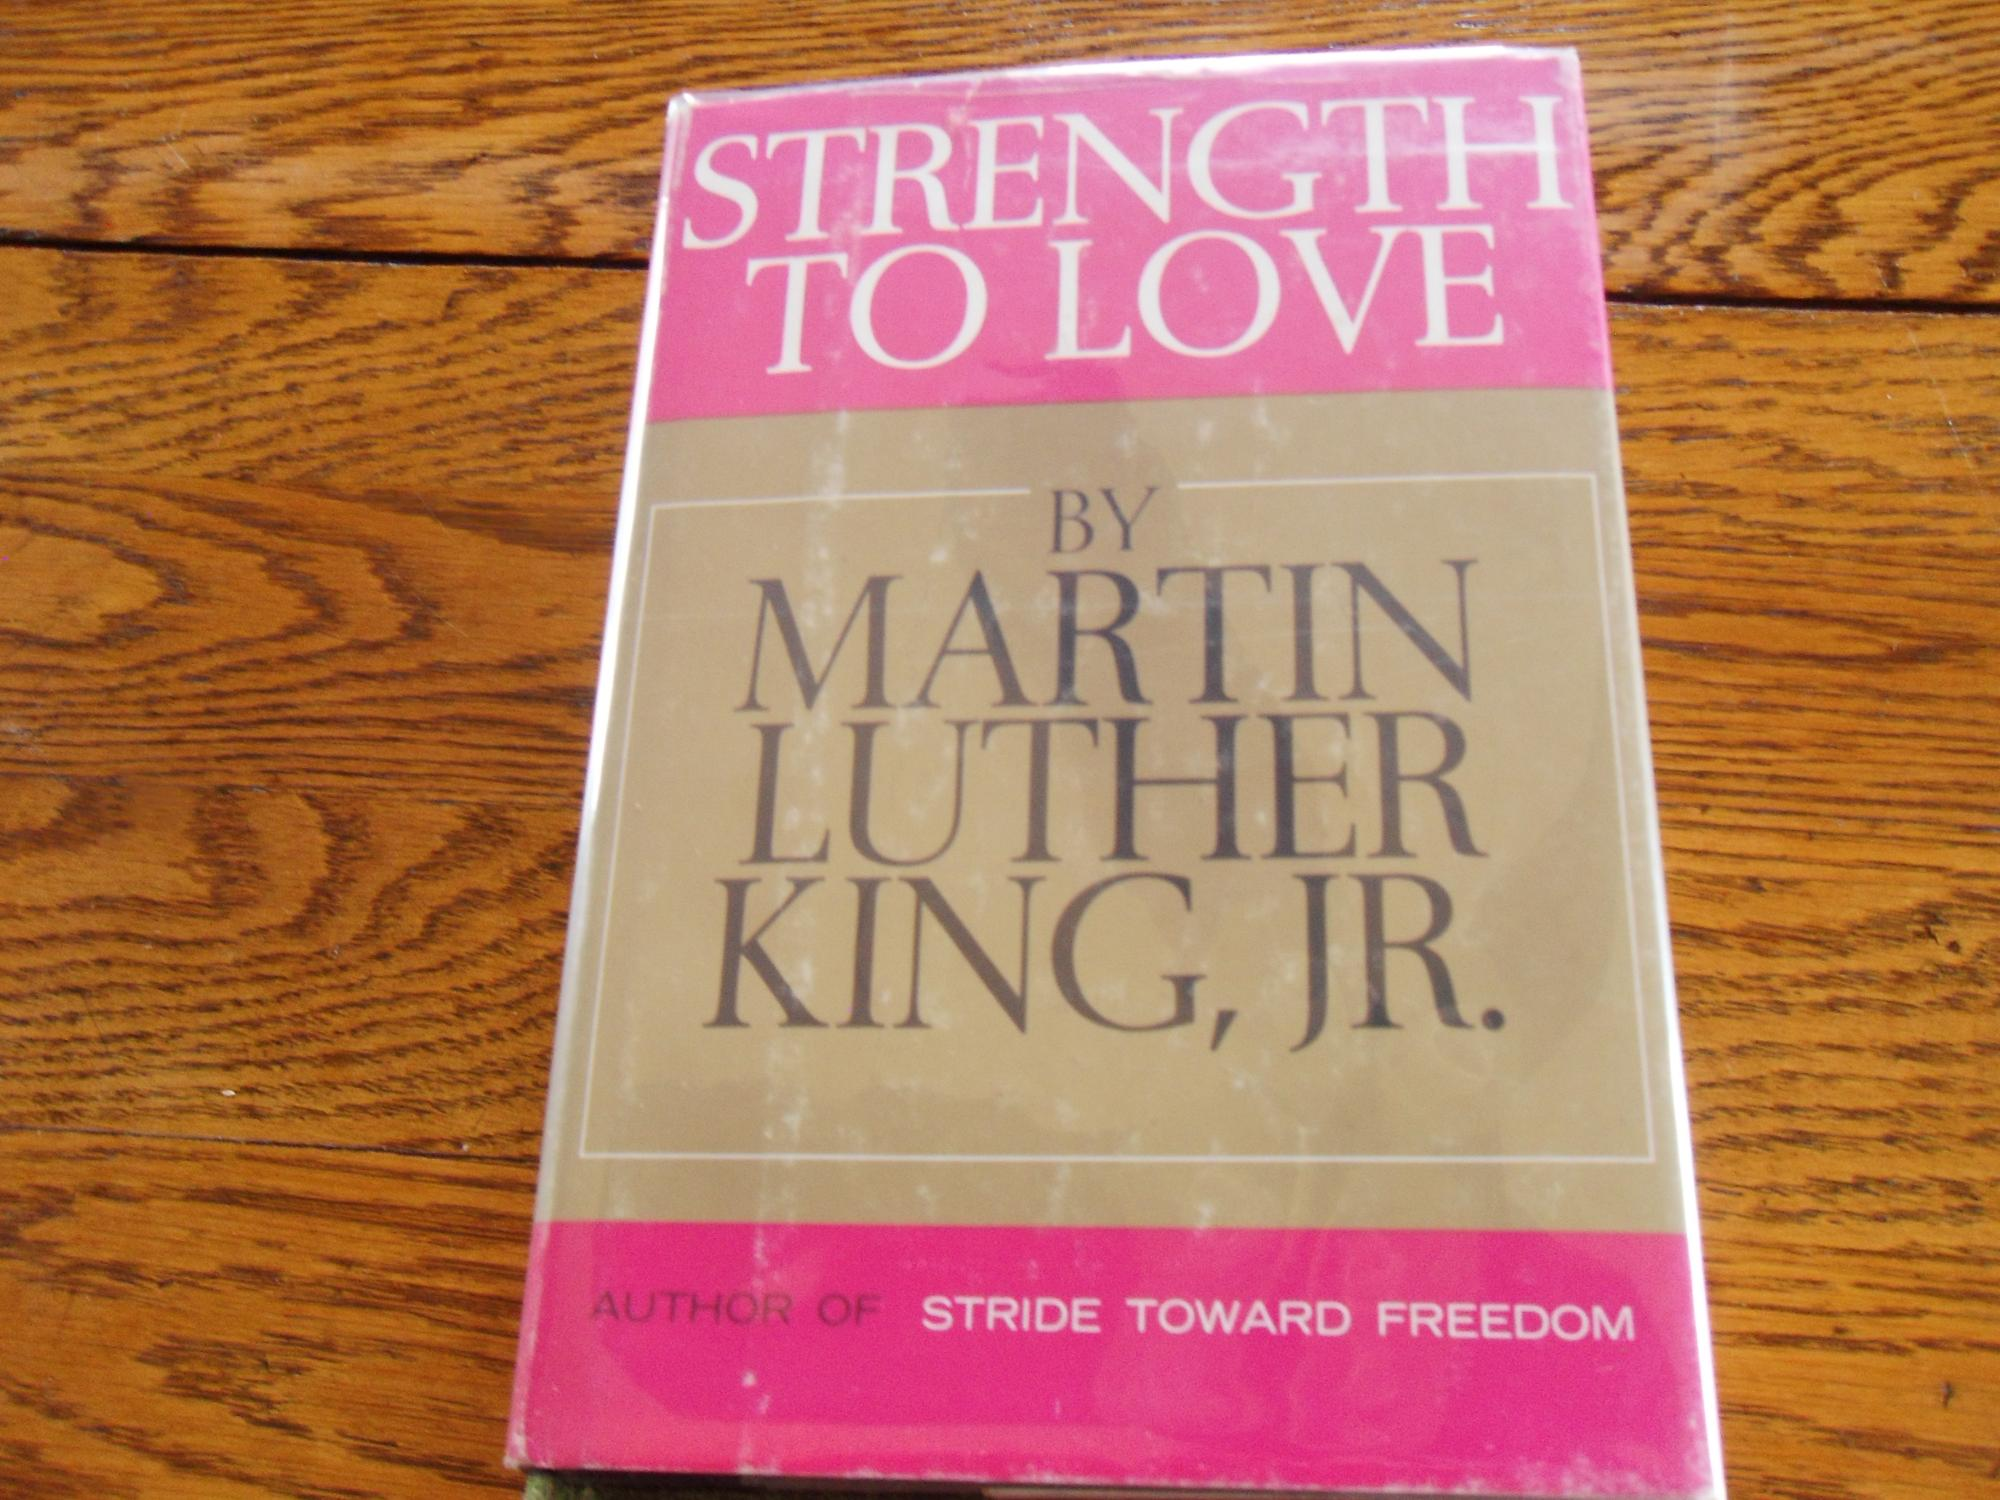 a review of the book strength to love by martin luther king jr Home → sparknotes → biography study guides → martin luther king, jr martin luther king, jr review test further reading how be book-smarter contact.